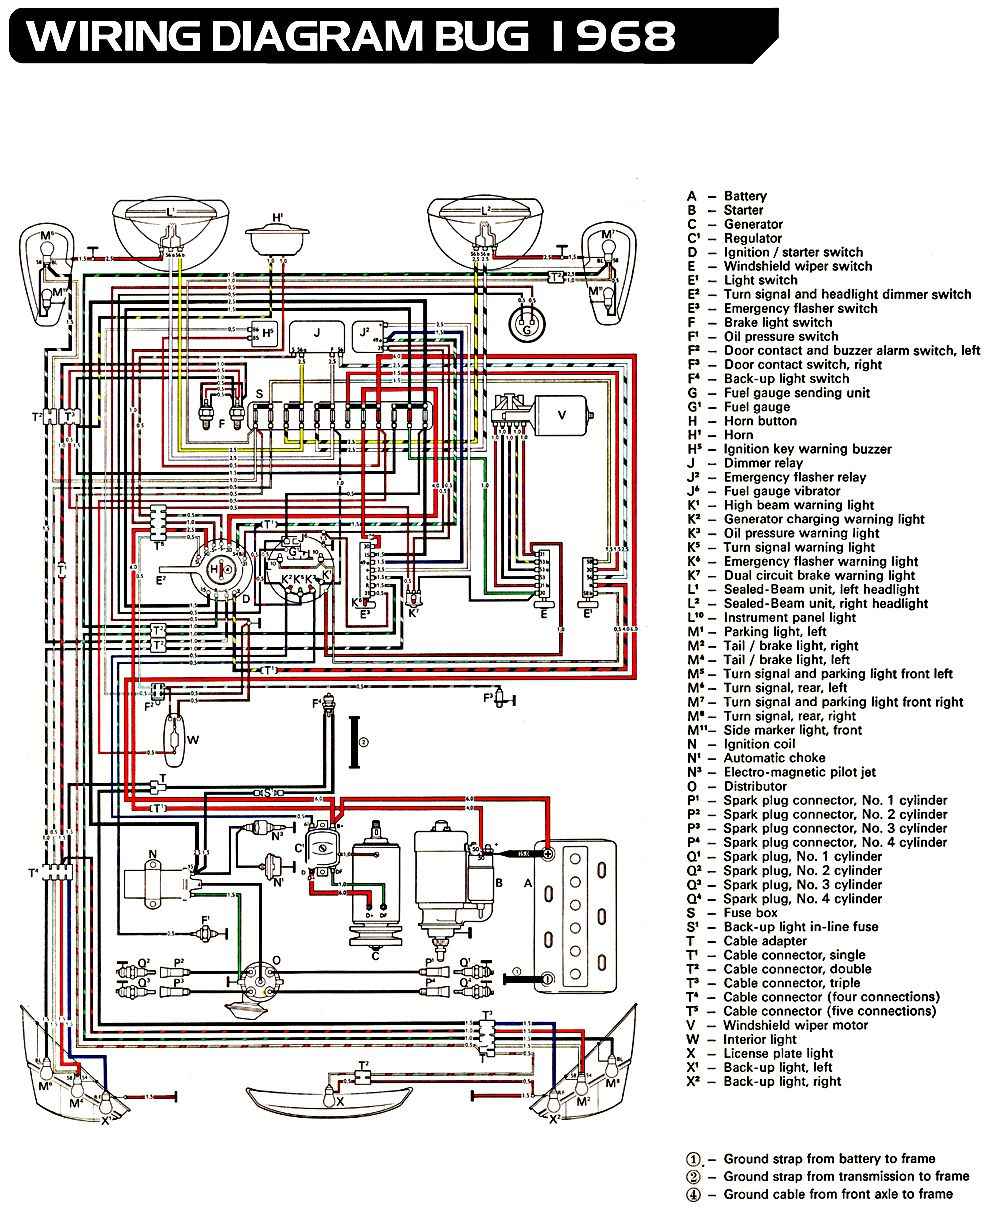 3a1908112d3826270ed5e3be362292bf vw bug ignition wiring diagram 73 vw wiring diagram free 1968 vw beetle wiring diagram at bayanpartner.co